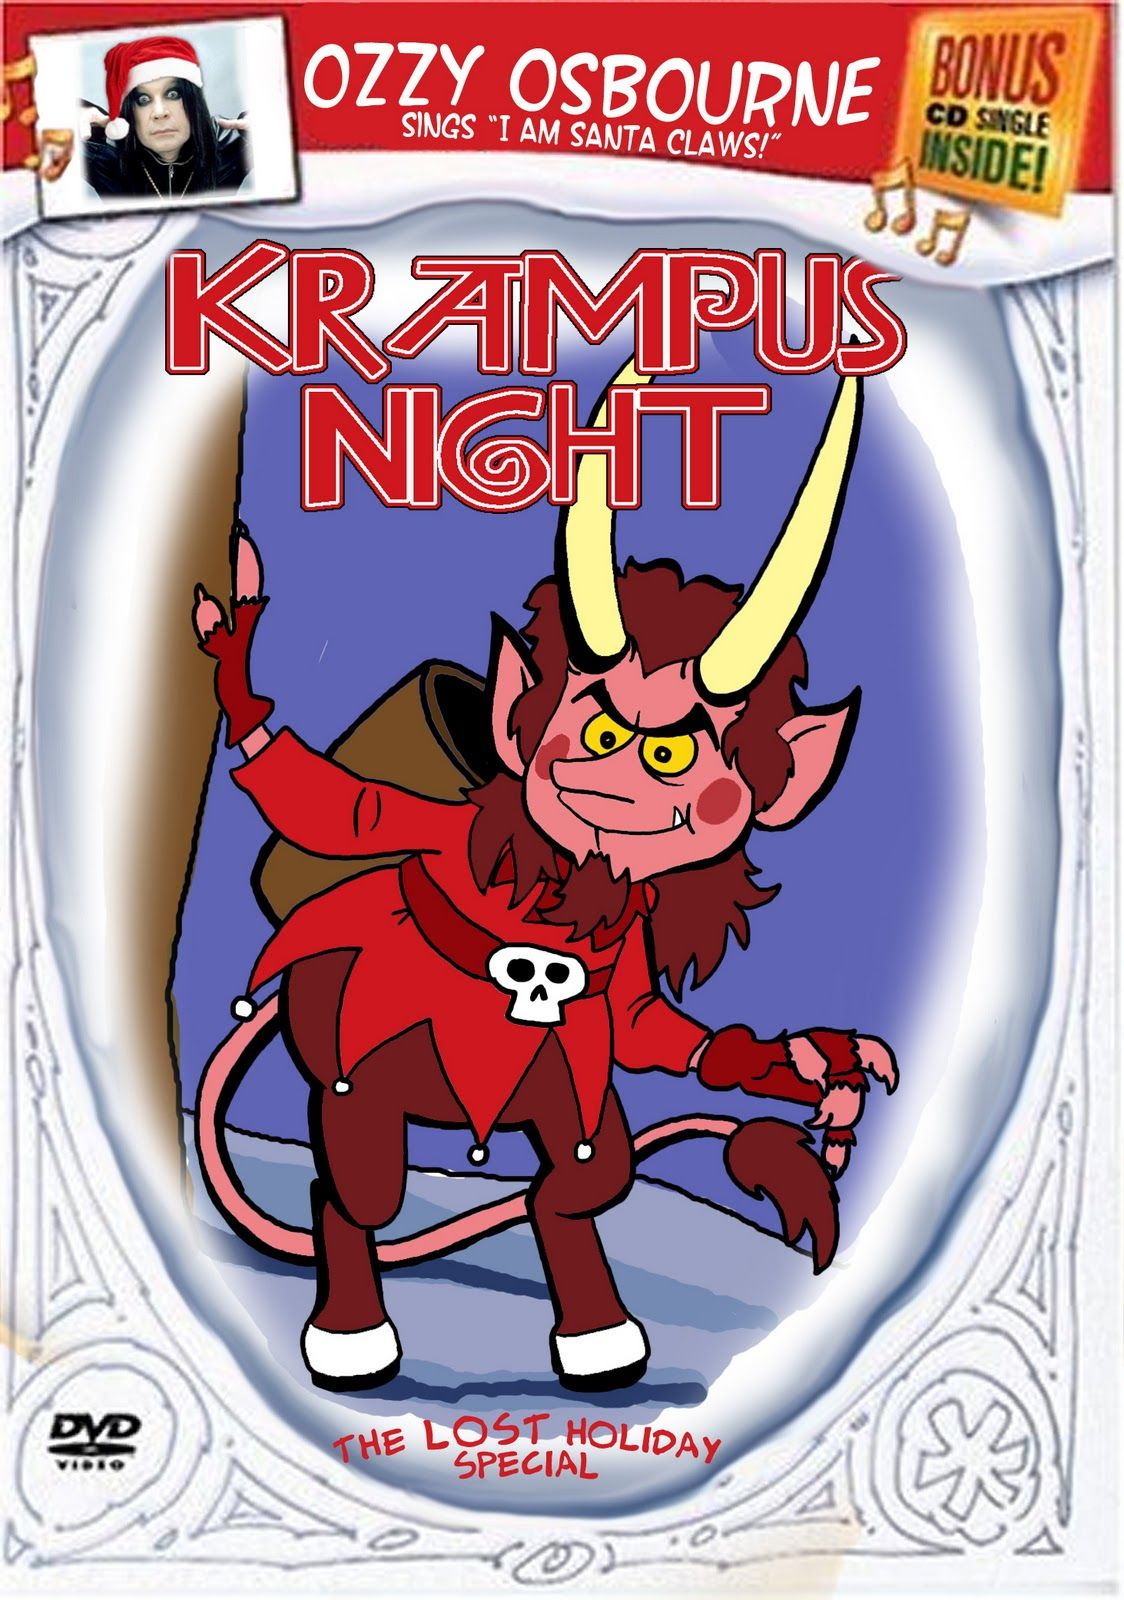 Krampus Night is almost impossible to find with Rankin Bass ...